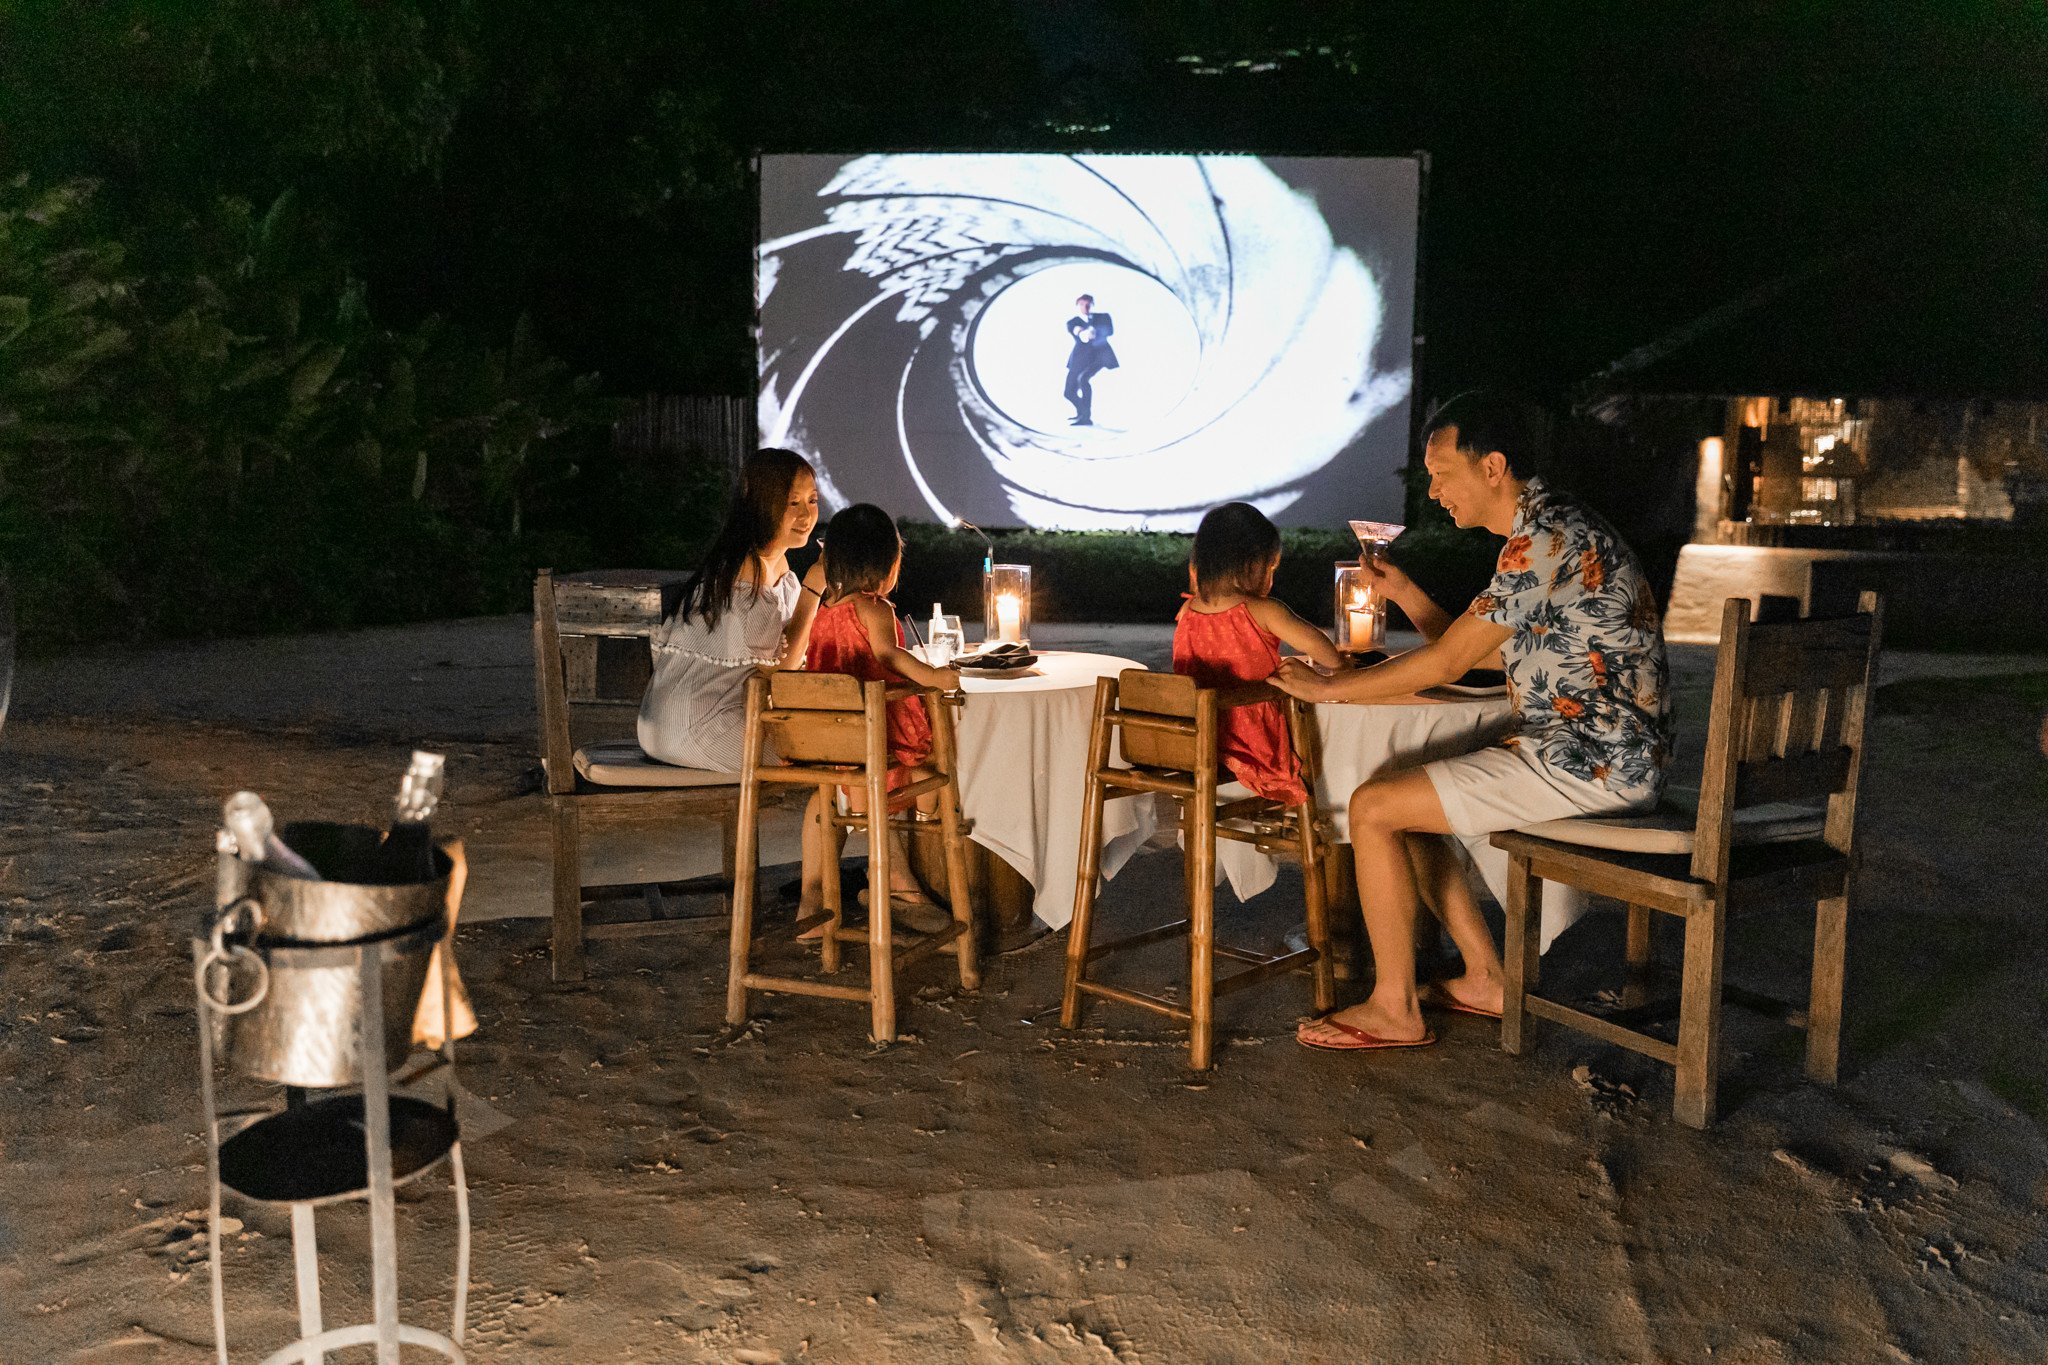 Our first beach dining movie experience as a family, catching the 1974 James Bond classic. The girls sat through and enjoyed the action-packed film, no fuss. All under the stars!